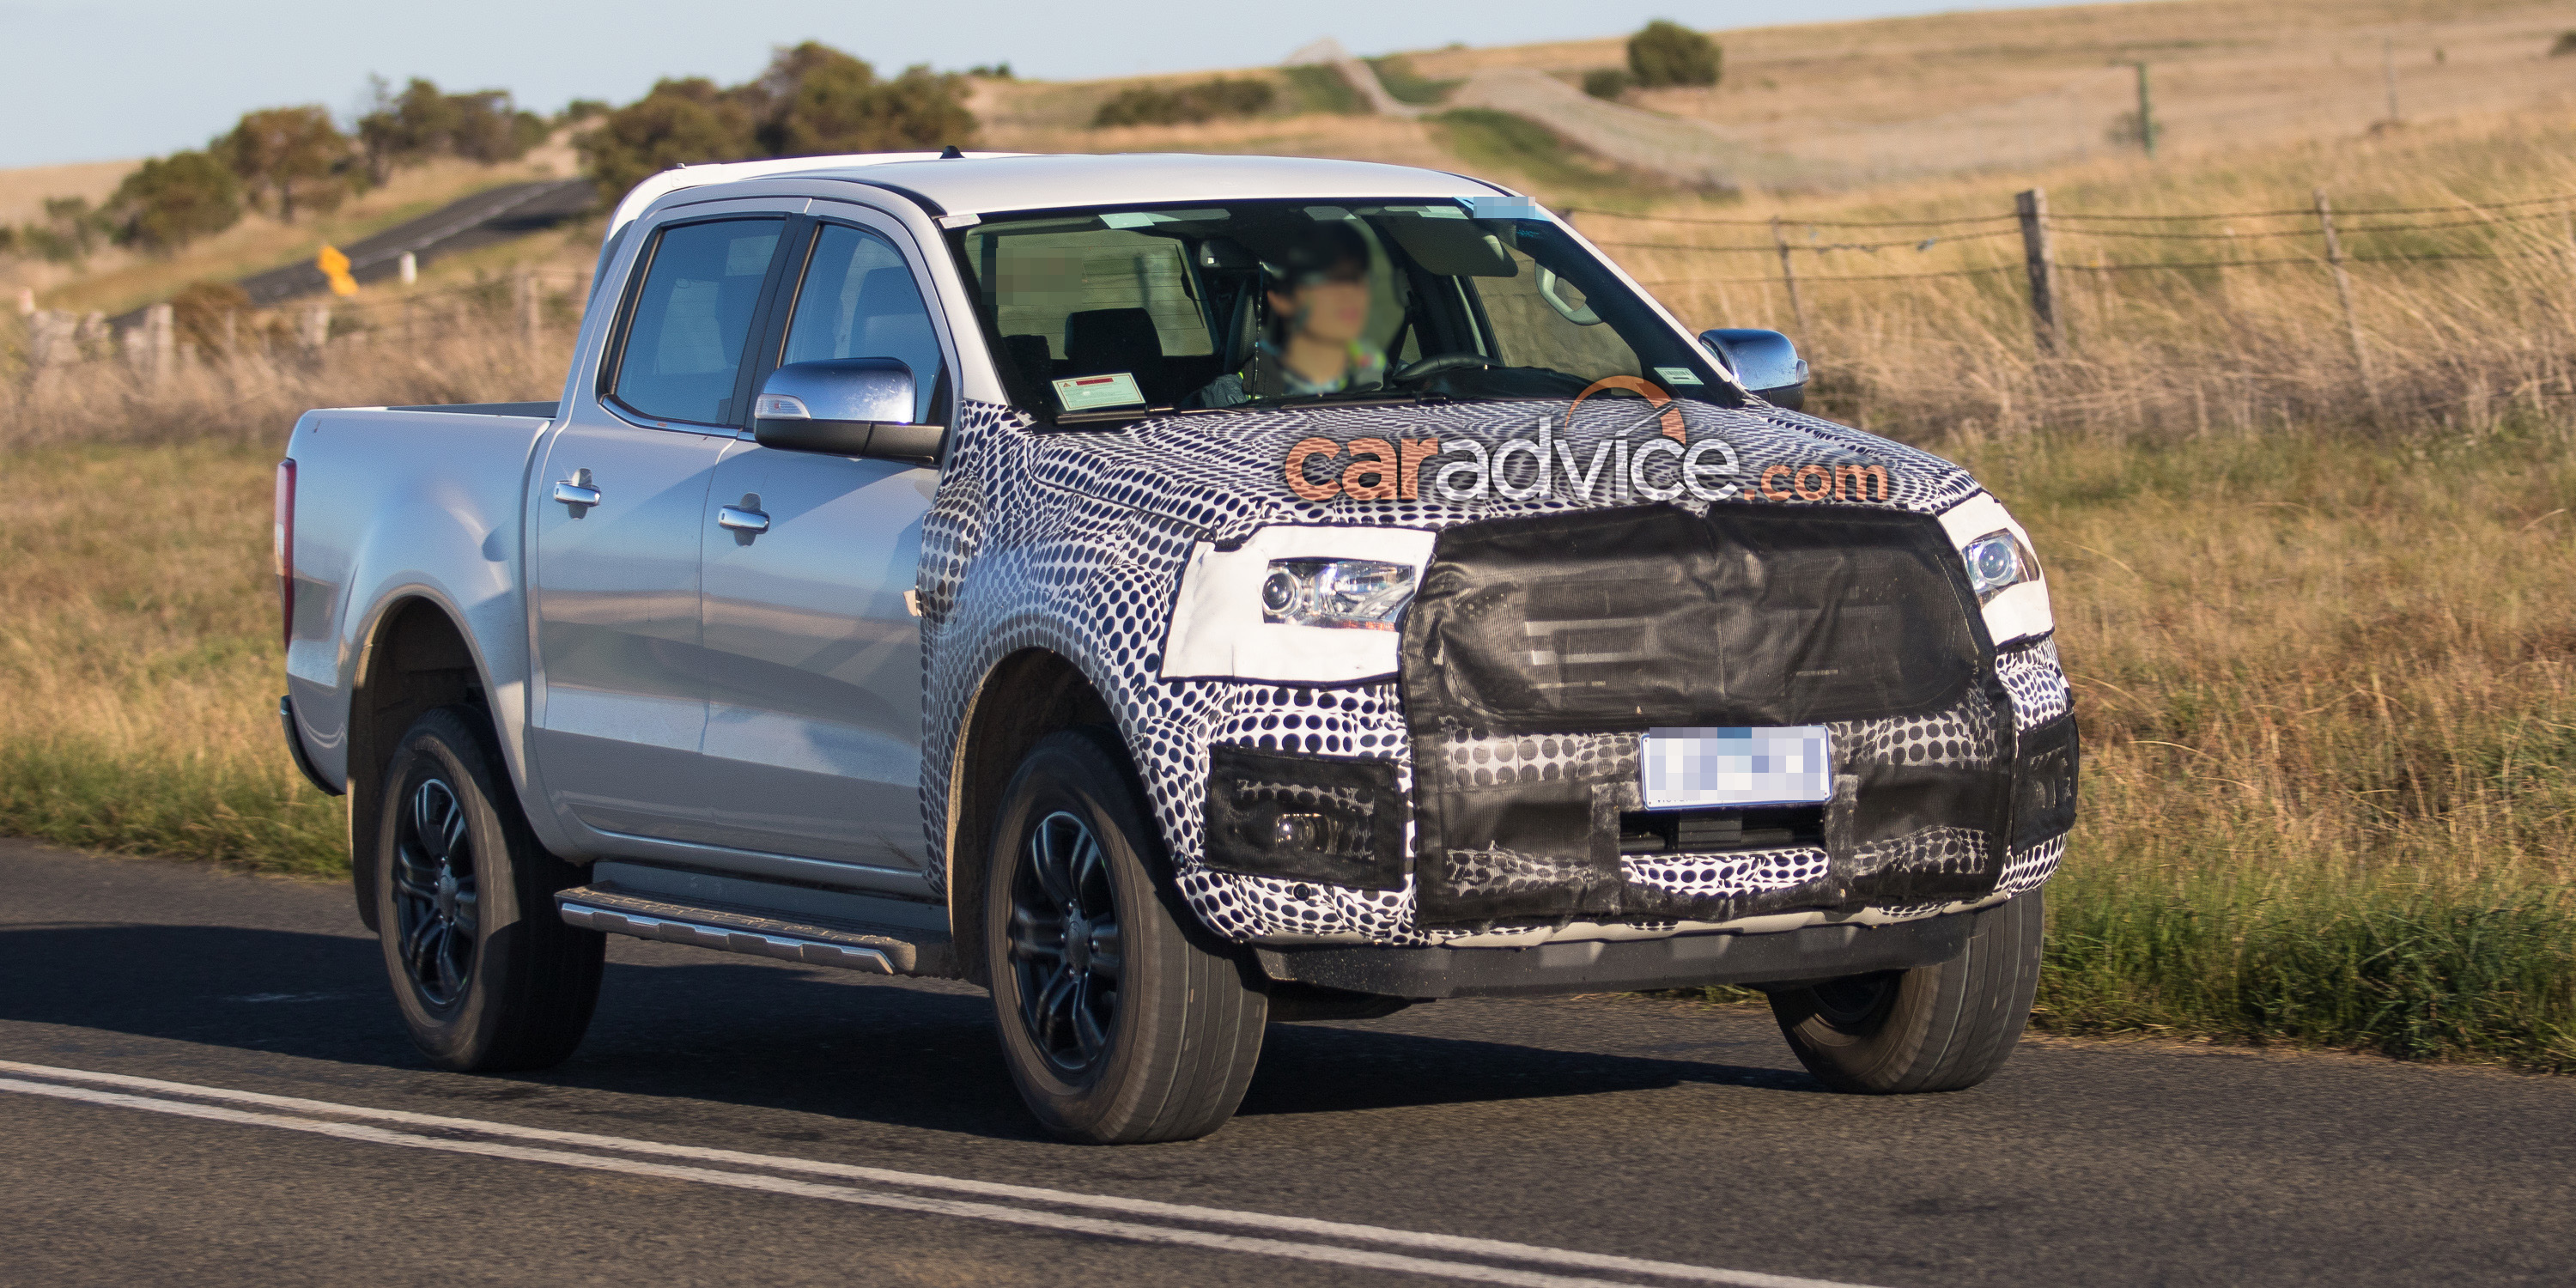 2018 Ford Ranger And Everest Spied Testing AEB New Tech Coming